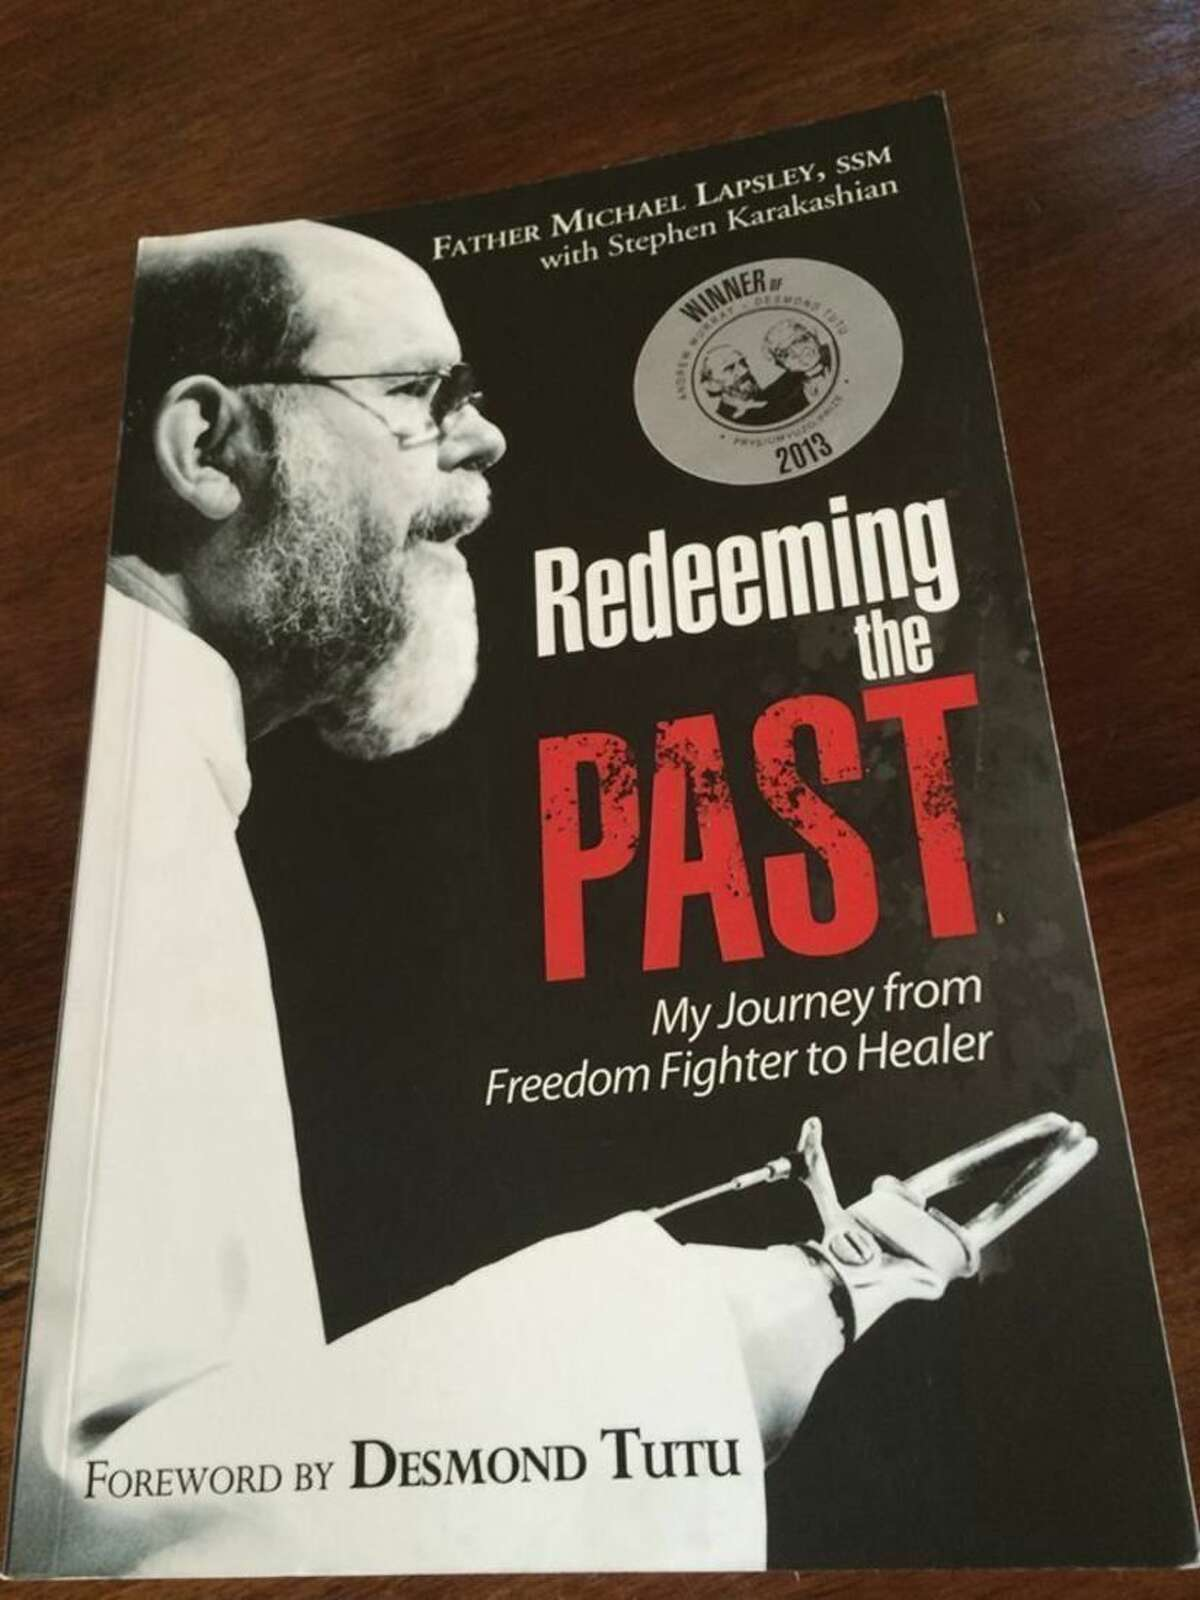 Contributed photo In 1990, Fr. Michael Lapsley, an Anglican priest active in the struggle against apartheid in South Africa, opened a letter bomb that nearly killed him, Though he survived, the blast took both his hands and one of his eyes. This memoir tells the story of this horrendous event, beginning with the journey that led him there particularly his rising awareness of the radical demands of the gospel and his growing identification with the freedom struggle. But that was not the end of his inspiring journey. In post-apartheid South Africa, Fr. Lapsley saw a whole nation in need of healing. He discovered a new vocation: drawing on his own experience of trauma to promote the healing of others, in South Africa, and ultimately throughout the world.